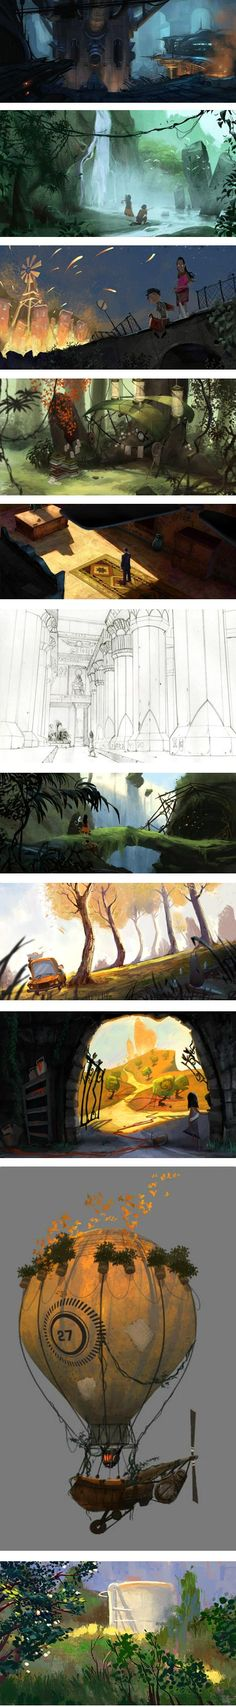 Erik D. Martin is a visual development artist based in Los Angeles and currently working for Disney Interactive.